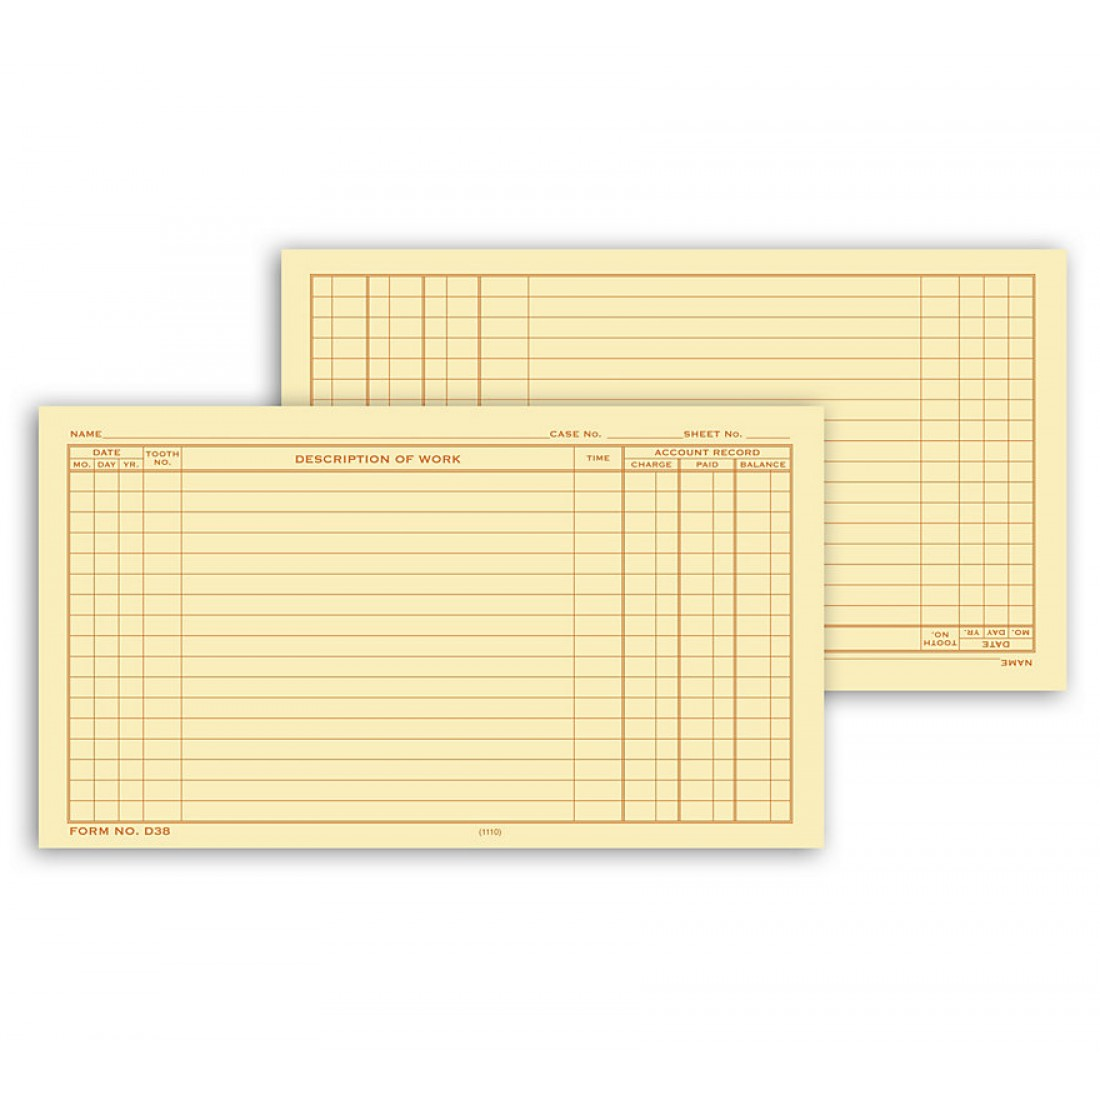 Dental Continuation Form For Folder Style Records